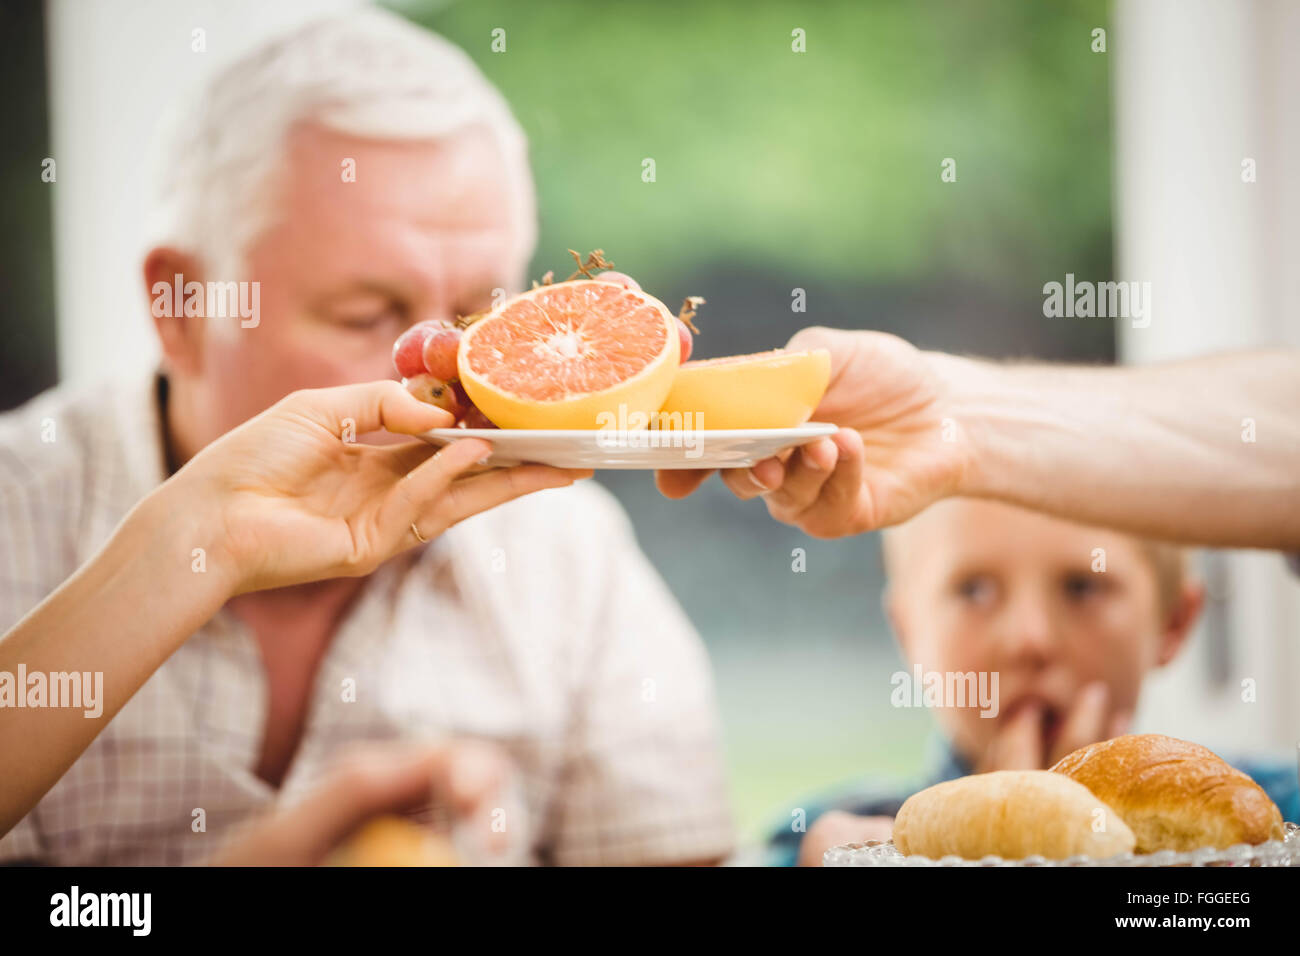 Close-up of hands passing plate of fruits - Stock Image